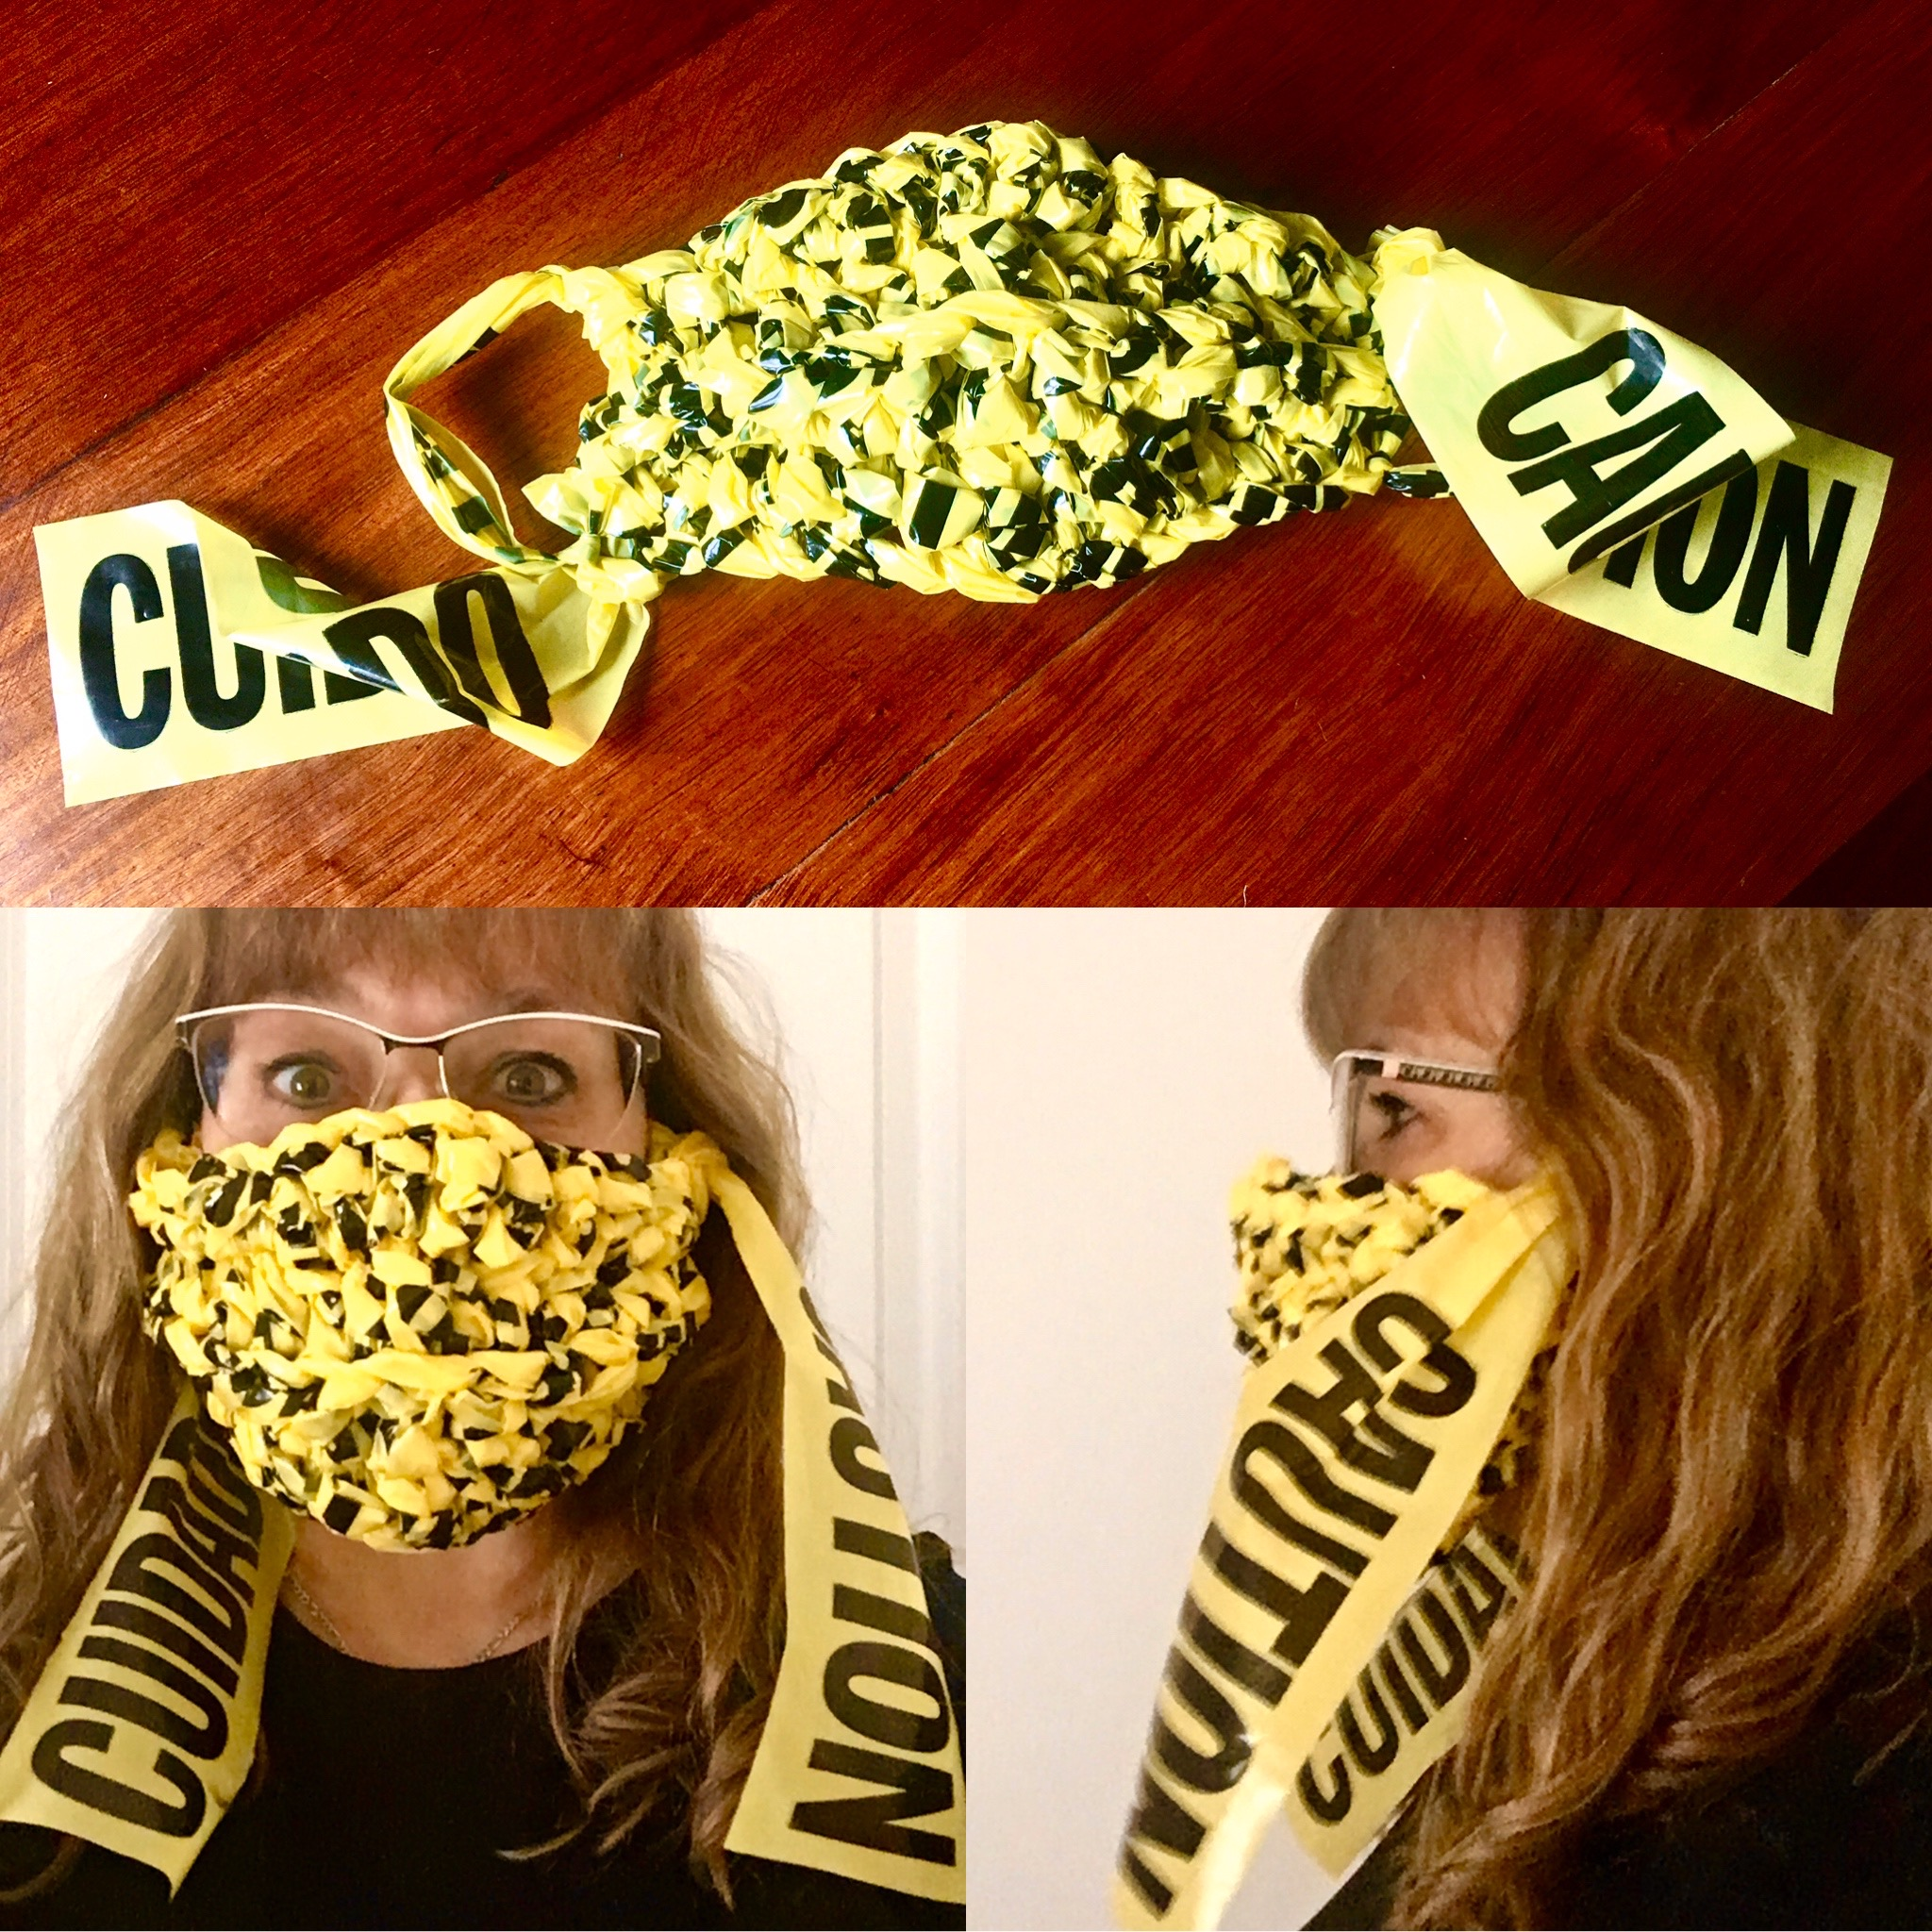 Three photos of a face mask made of yellow caution tape